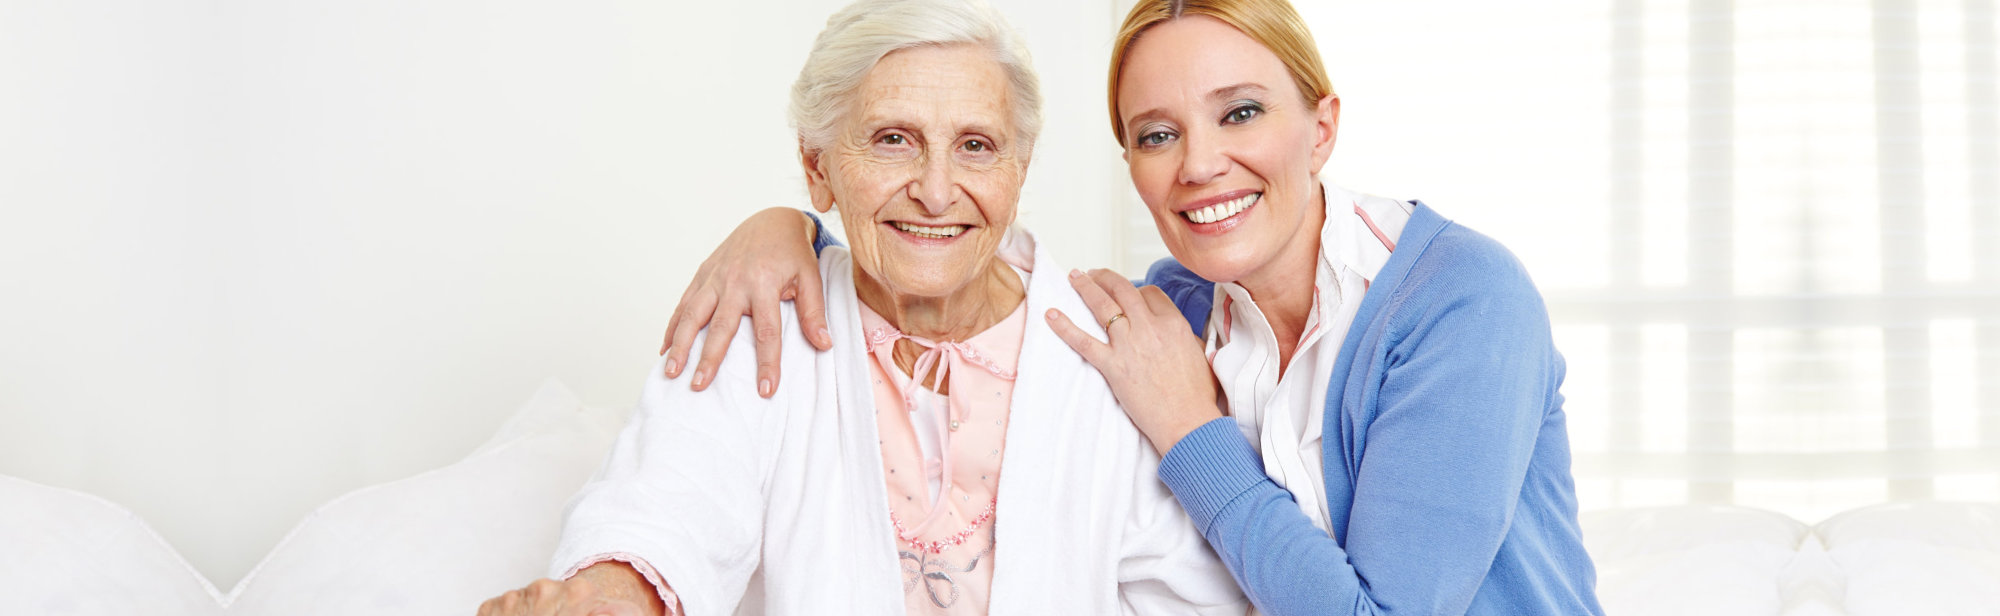 Smiling an old woman and his caregiver